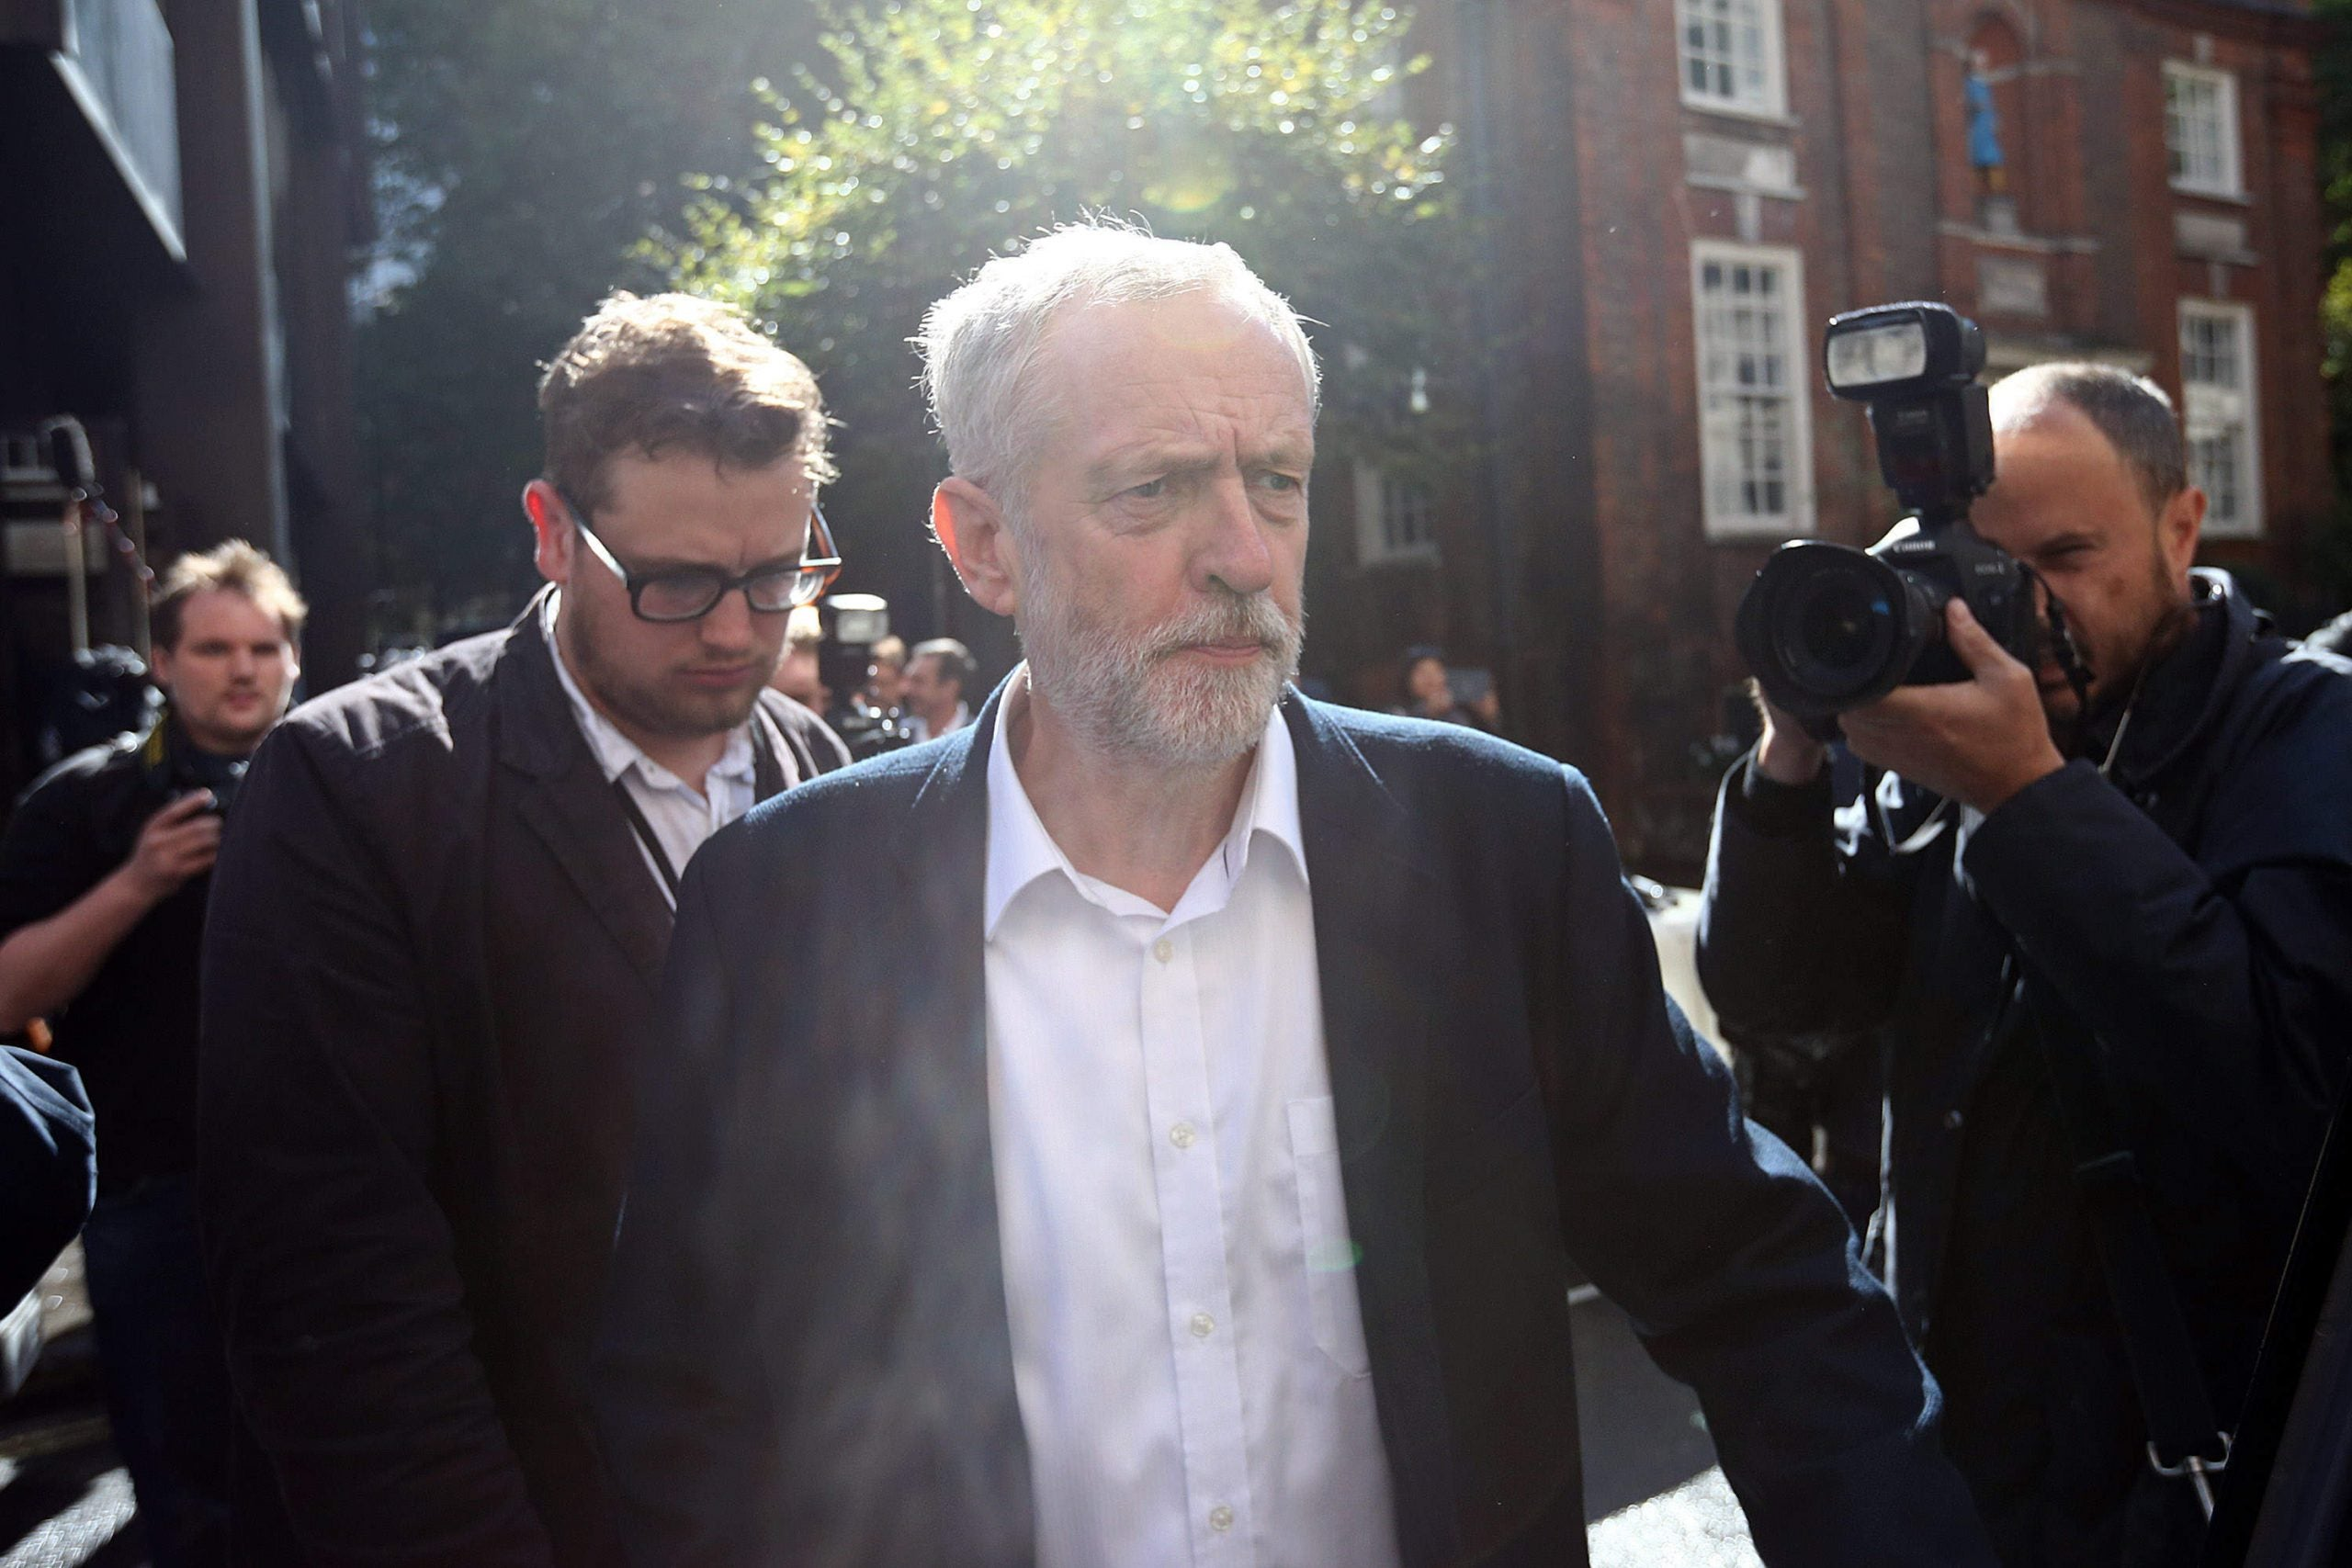 After Jeremy Corbyn's troubled start, even fewer in Labour expect him to last